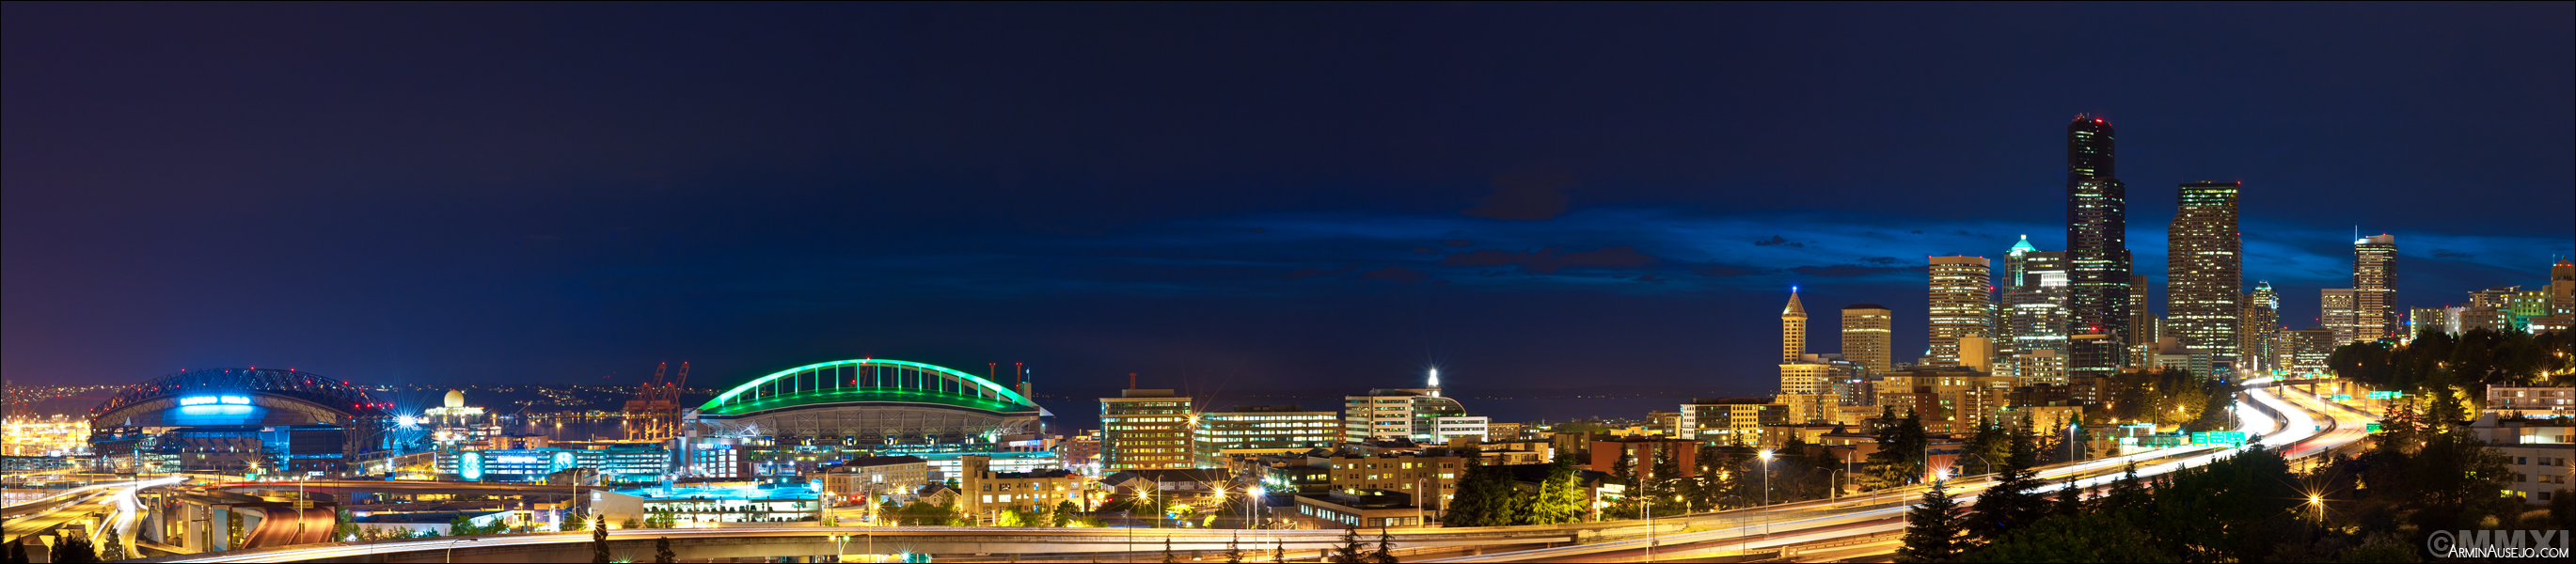 Panorama of Seattle at night from Jose Rizal Park